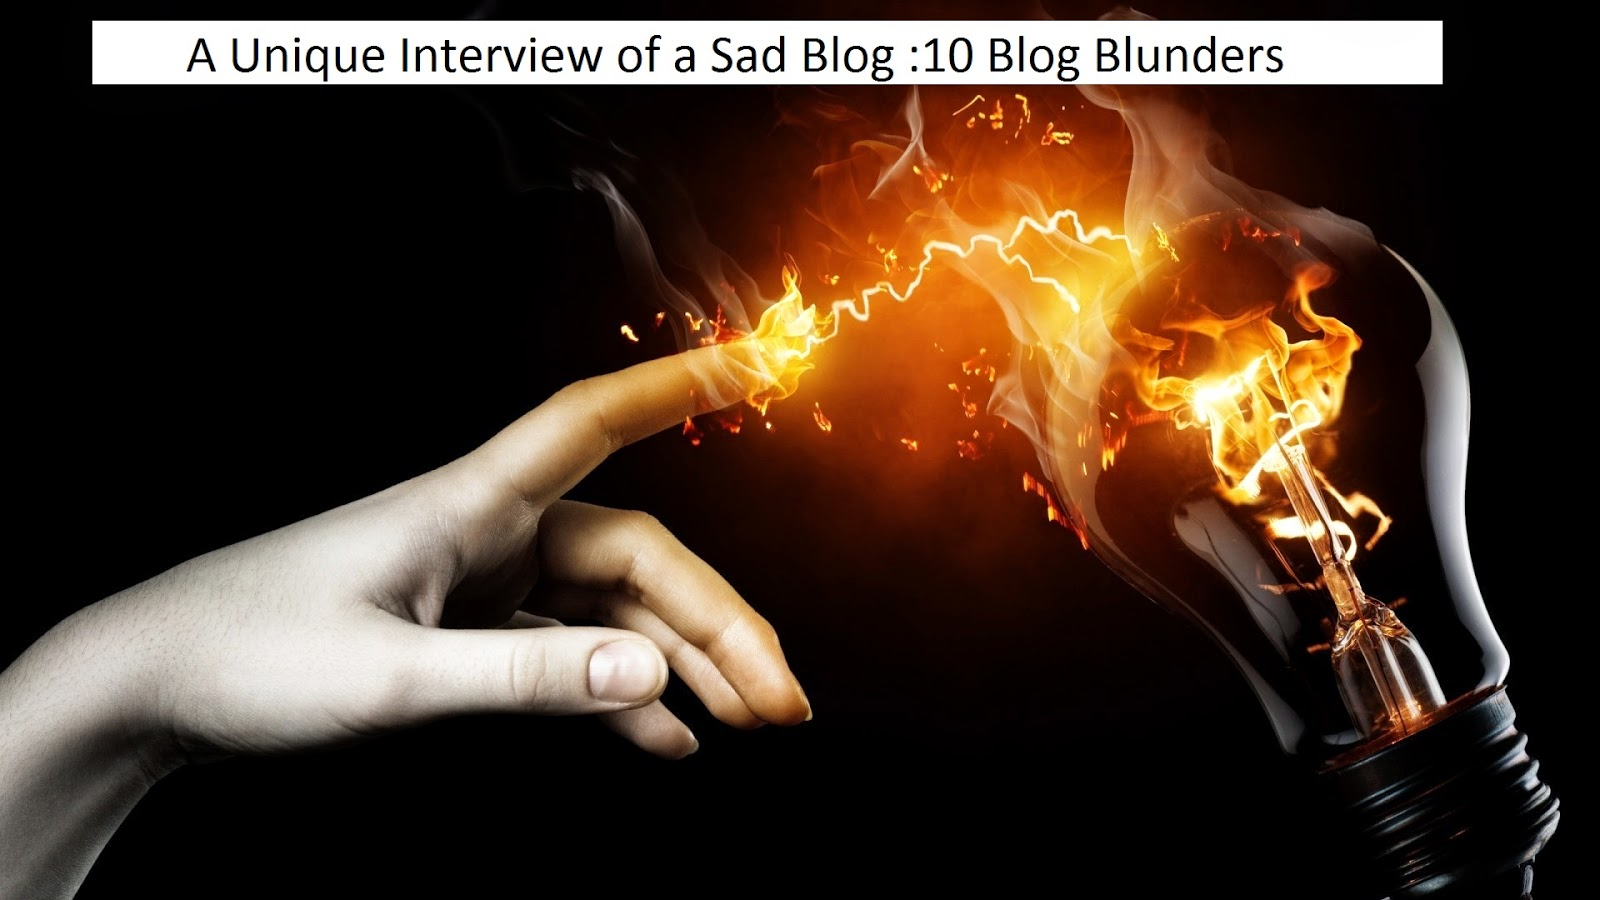 10-blogging-blunders-techseology-blog